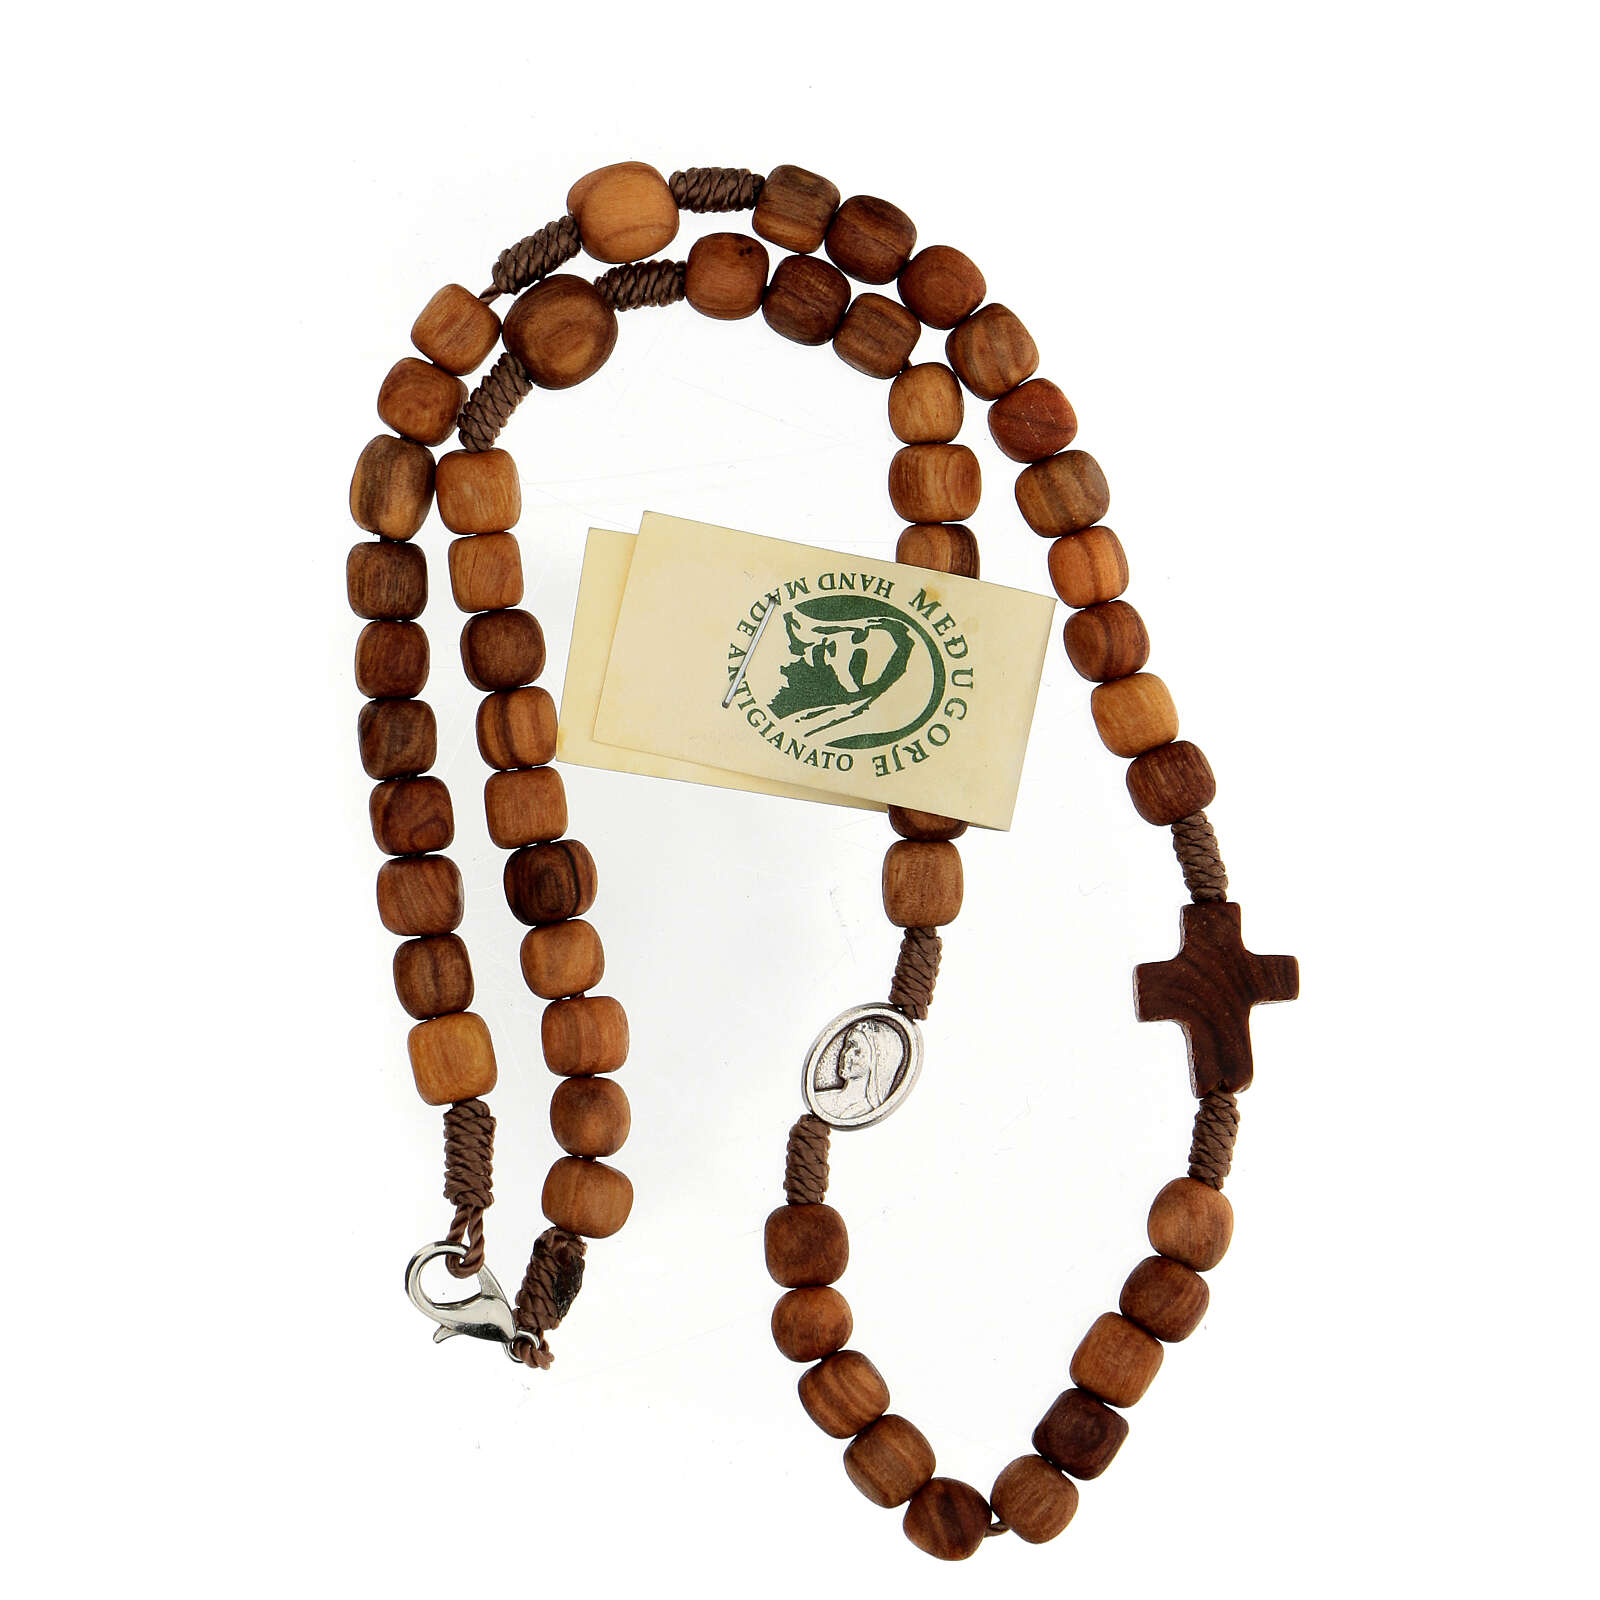 Medjugorje rosary choker with olive wood grains and brown rope 4